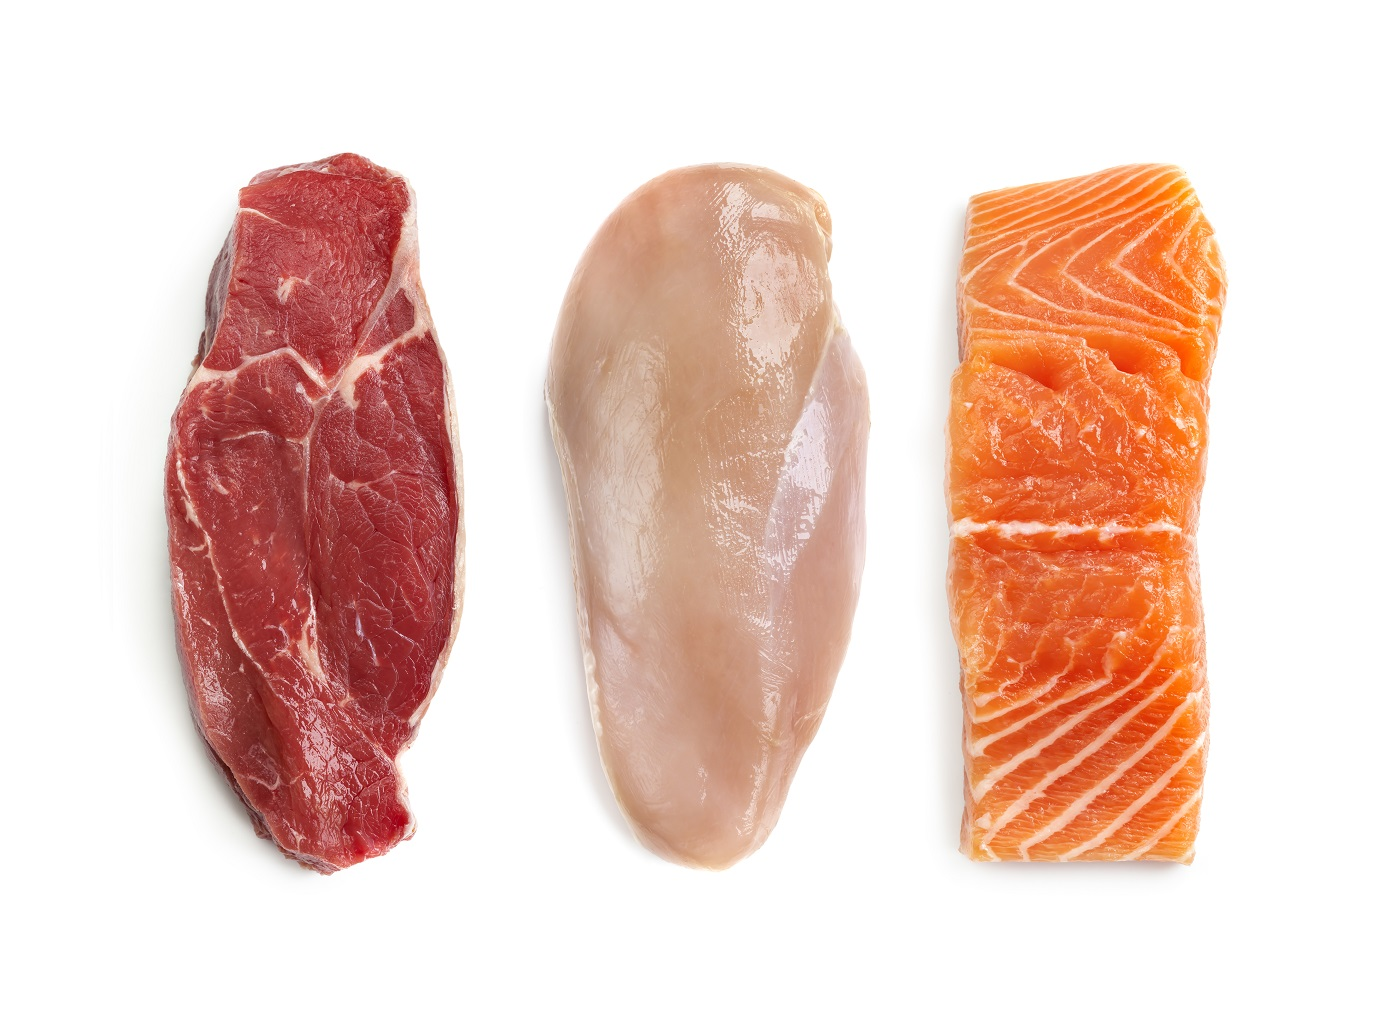 raw beef chicken and salmon side by side showing healthy cuts